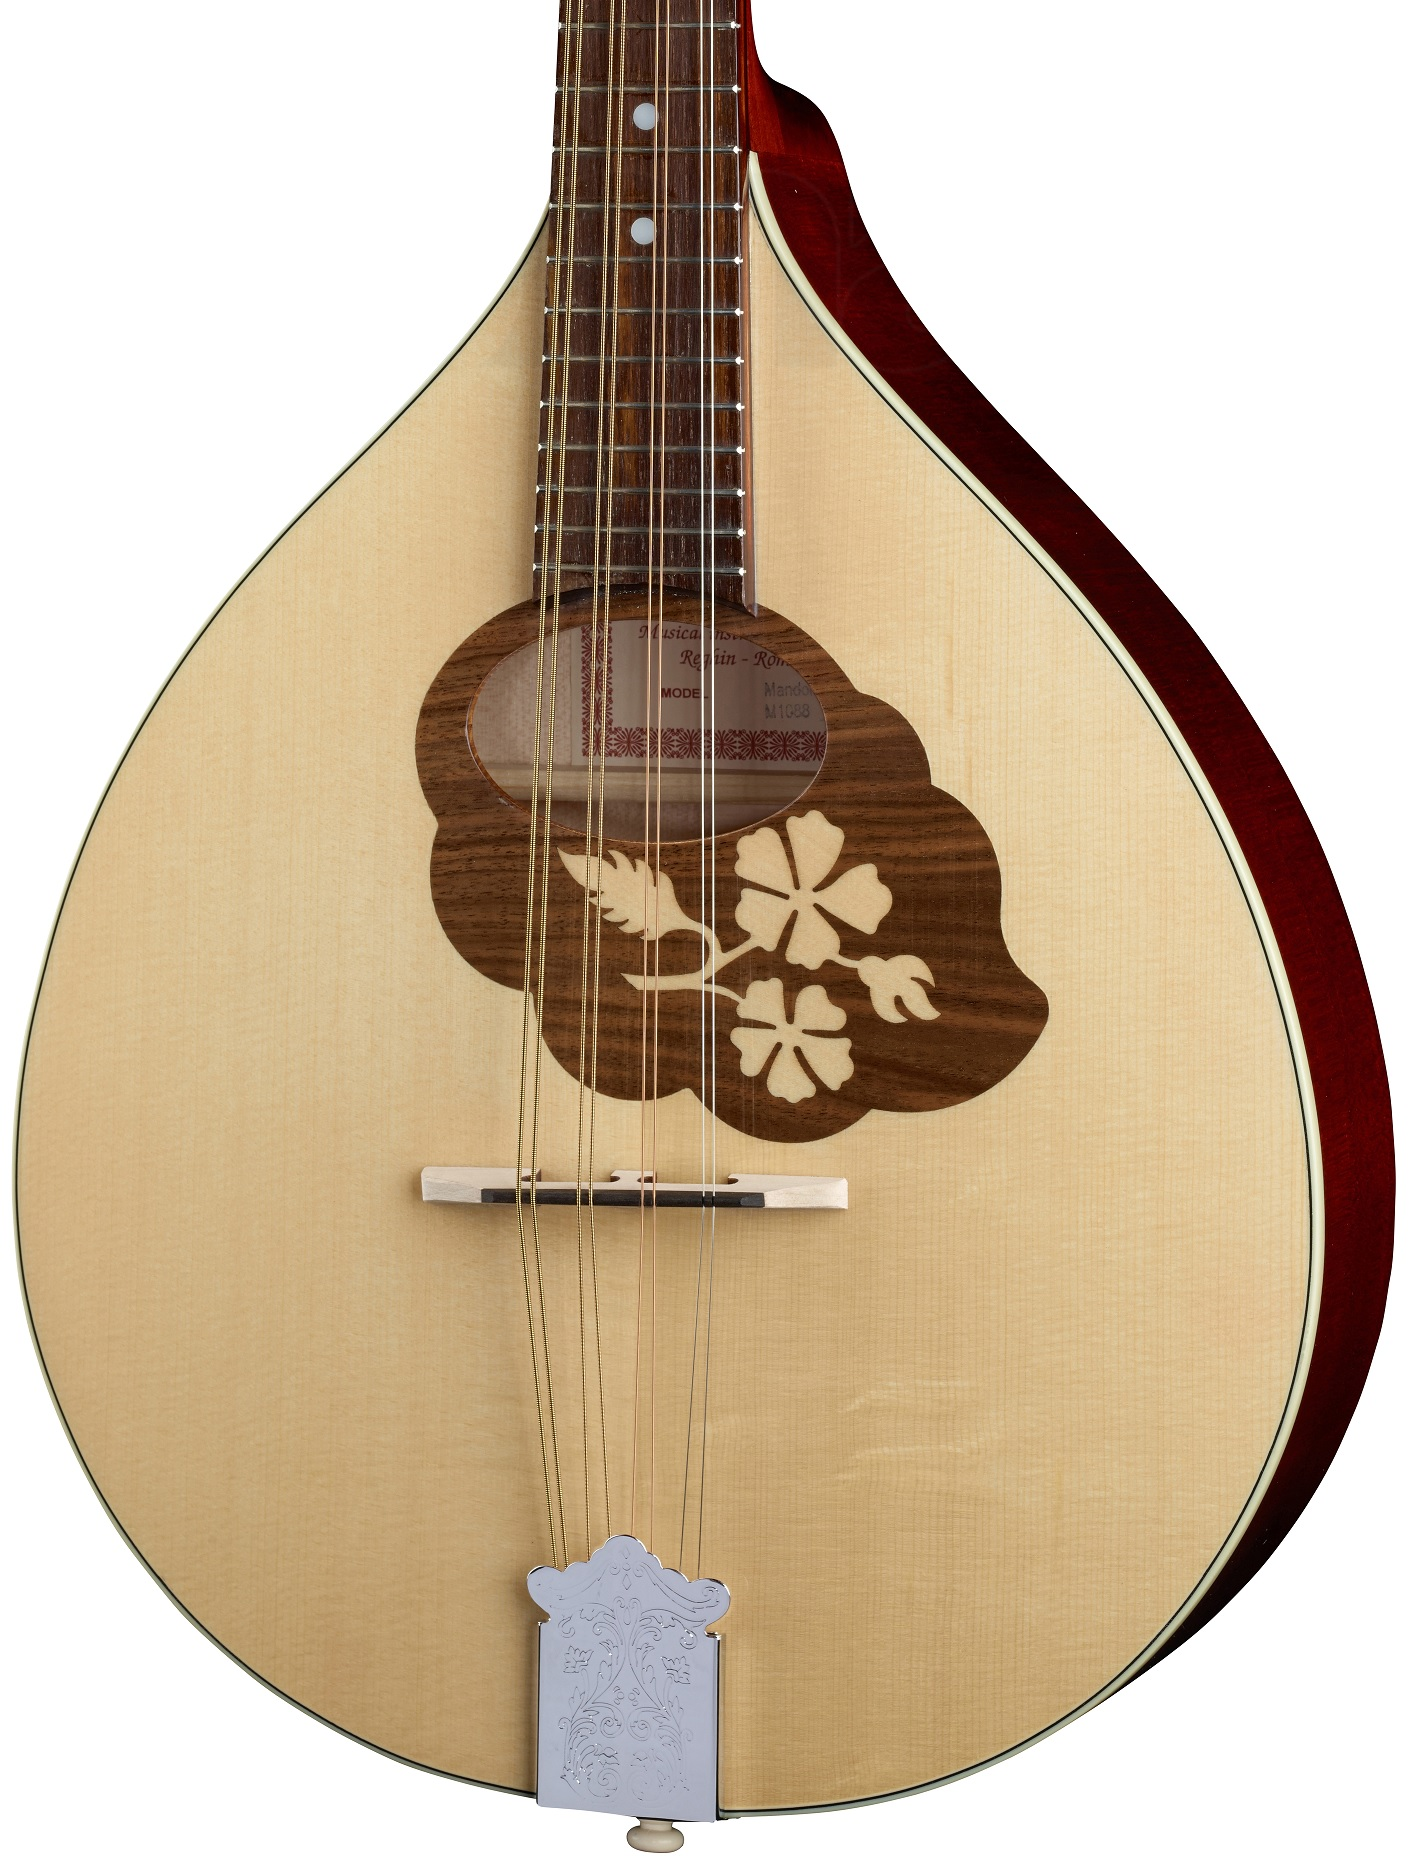 MANDOLA CONTRALTO IRLANDESE RGII MADE IN EUROPE ( MANDOLINO ) MASSELLO TOP ABETE FONDO ACERO MASSELLO FASCE MANICO ACERO SCALA 402mm 6